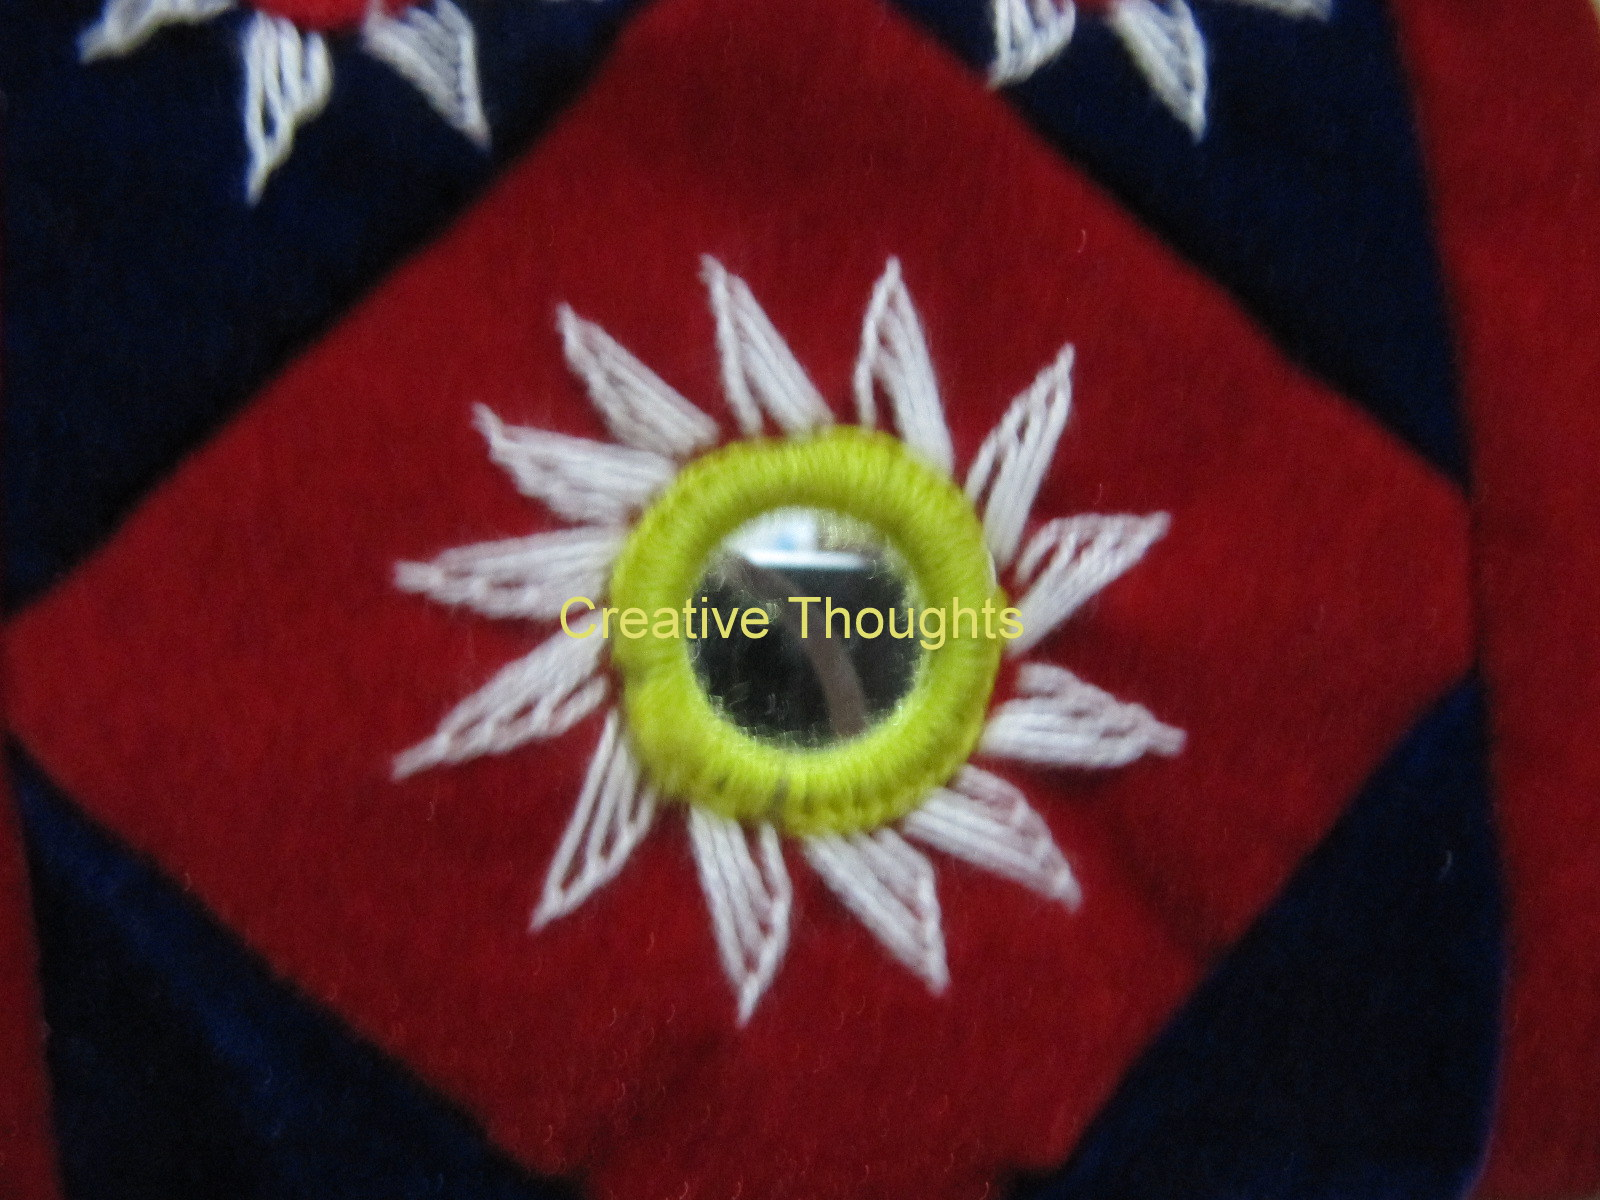 4d5eaf73e9 The ring of the mirror is a ready made one.Blanket stitch stitched on a  plastic ring..That will not last long and so I never use it.